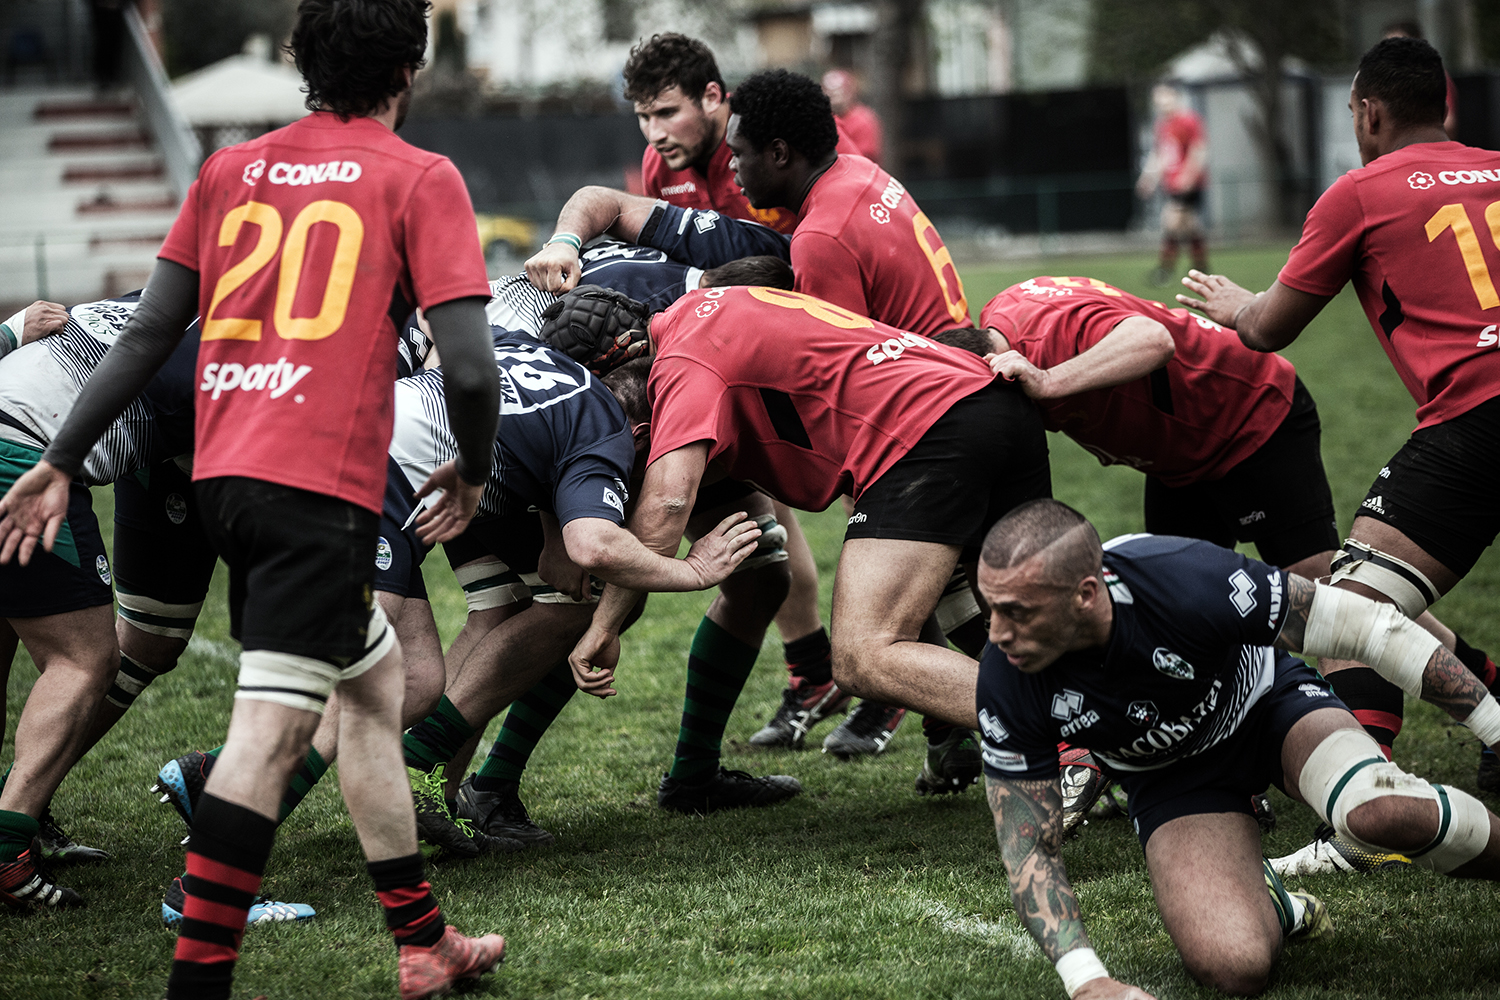 rugby_photograph_42.jpg